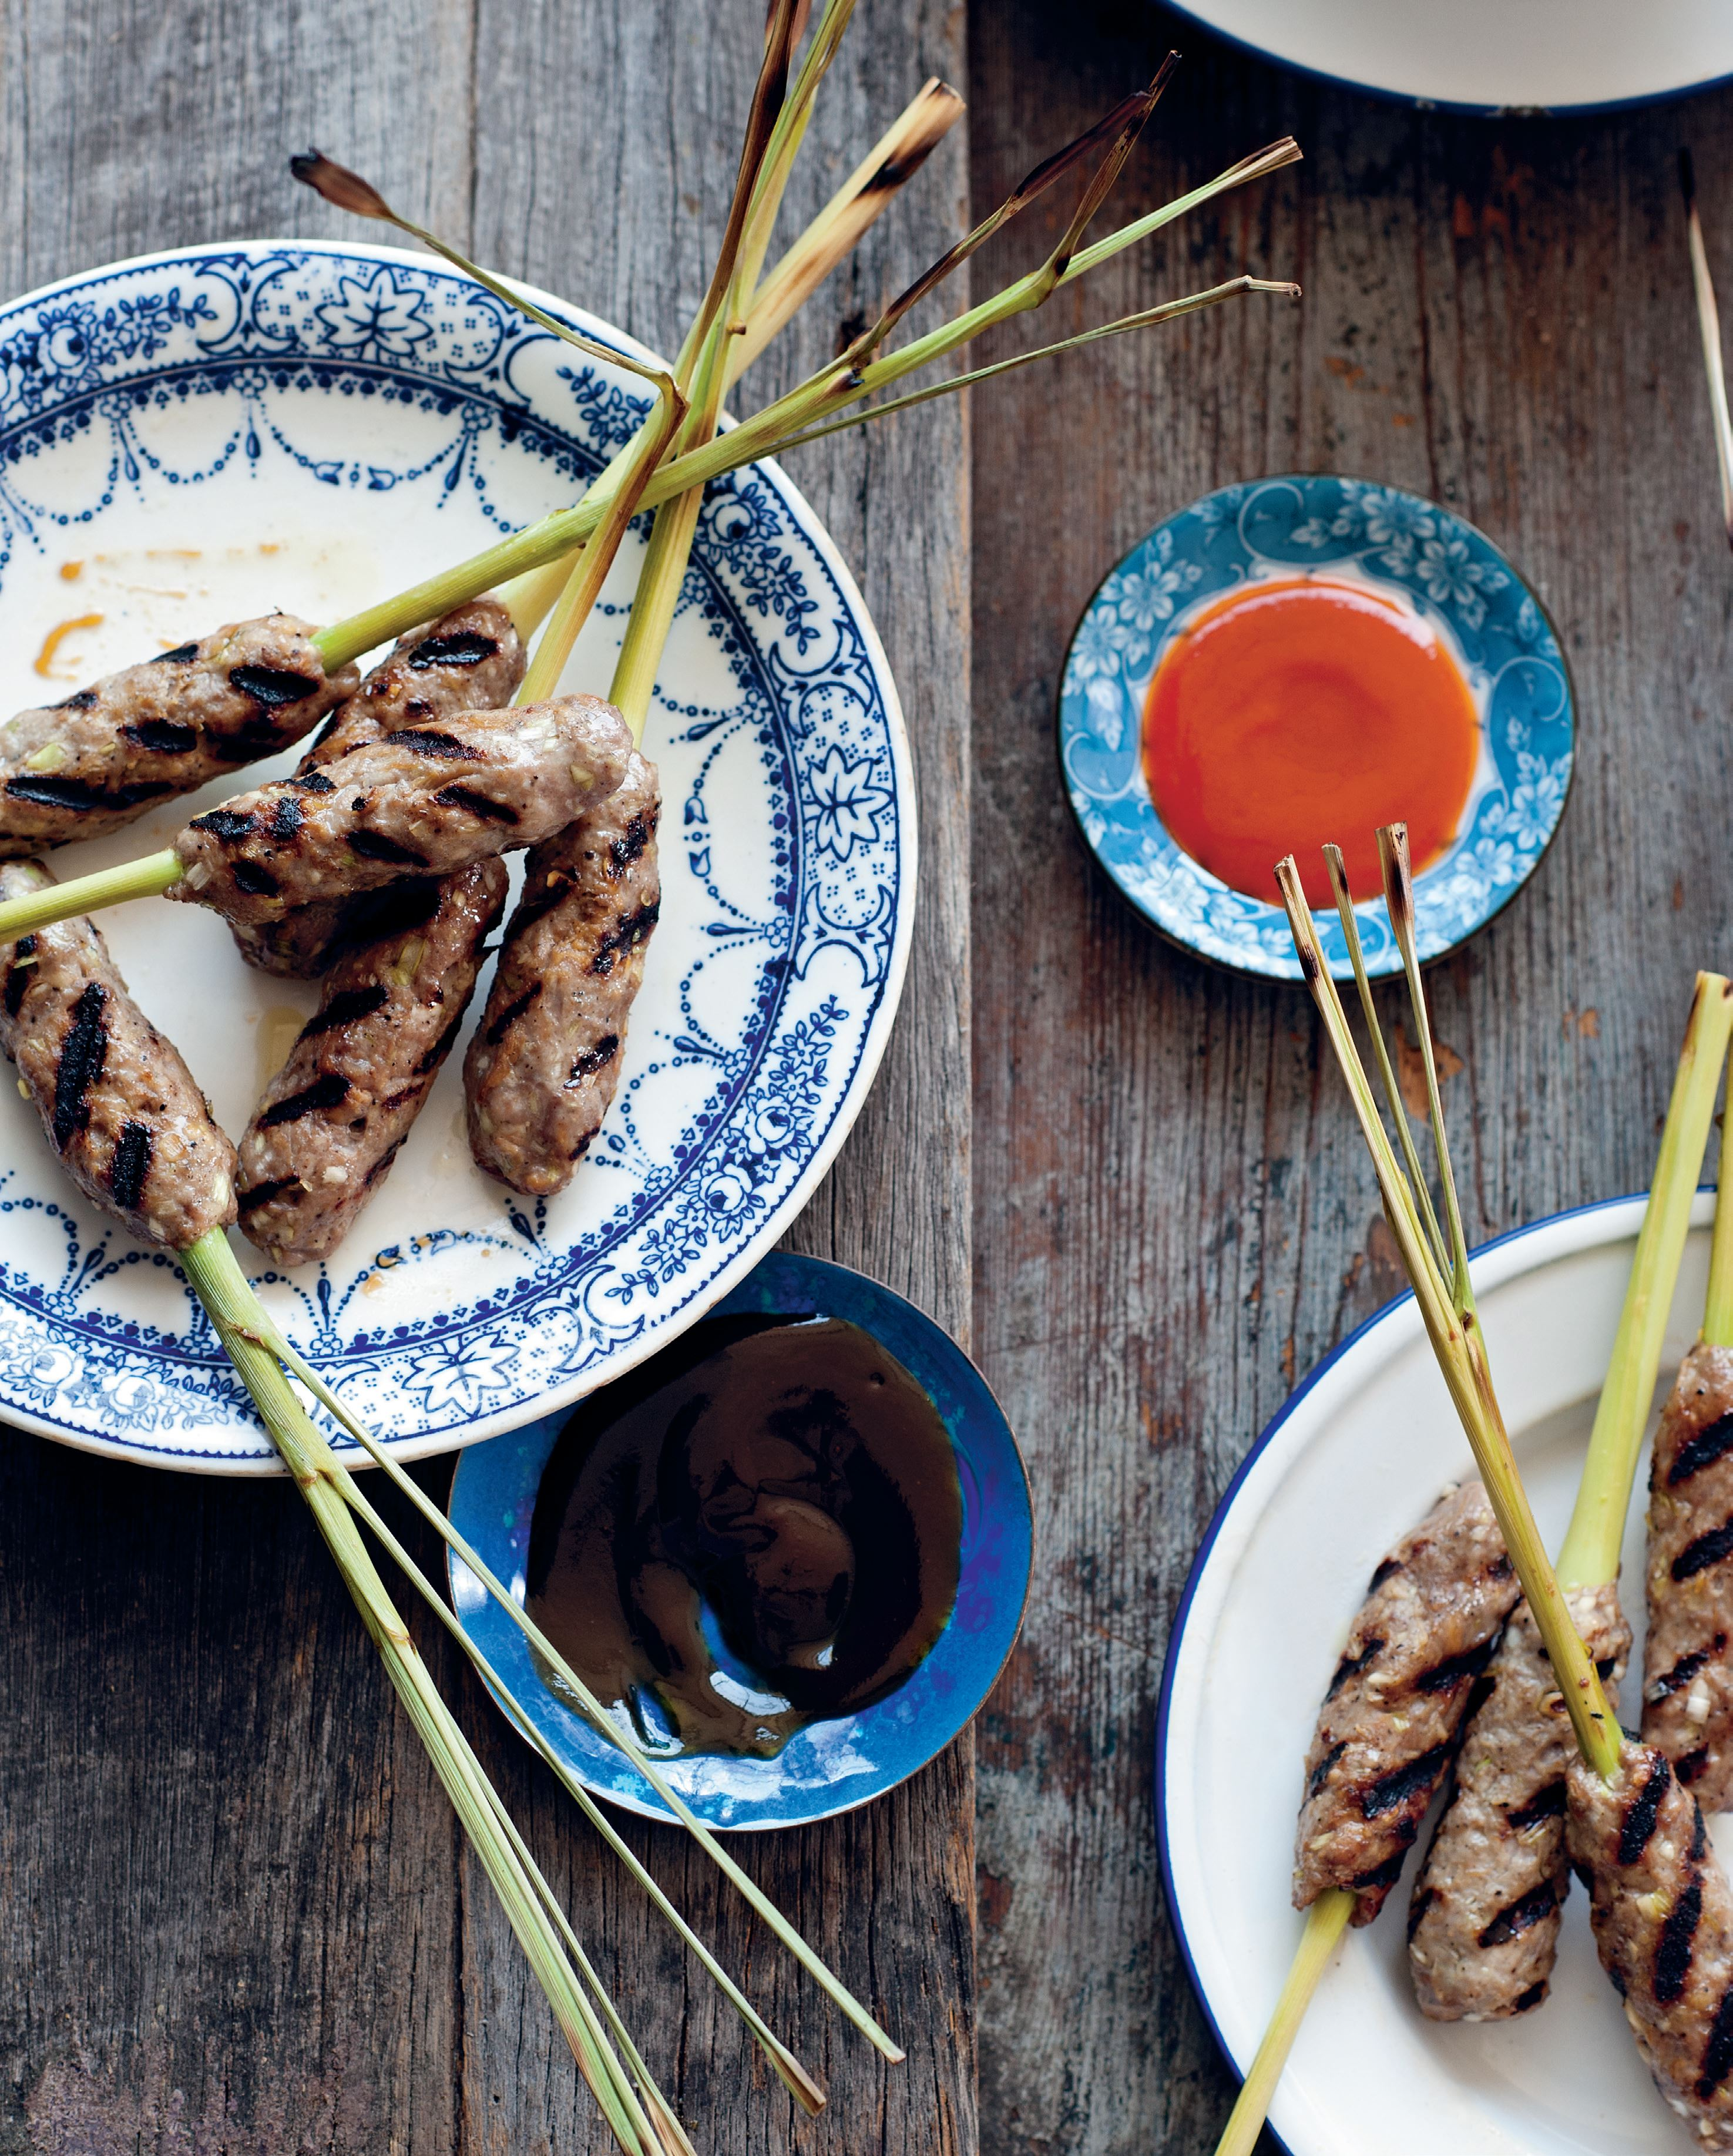 Hue lemongrass skewers